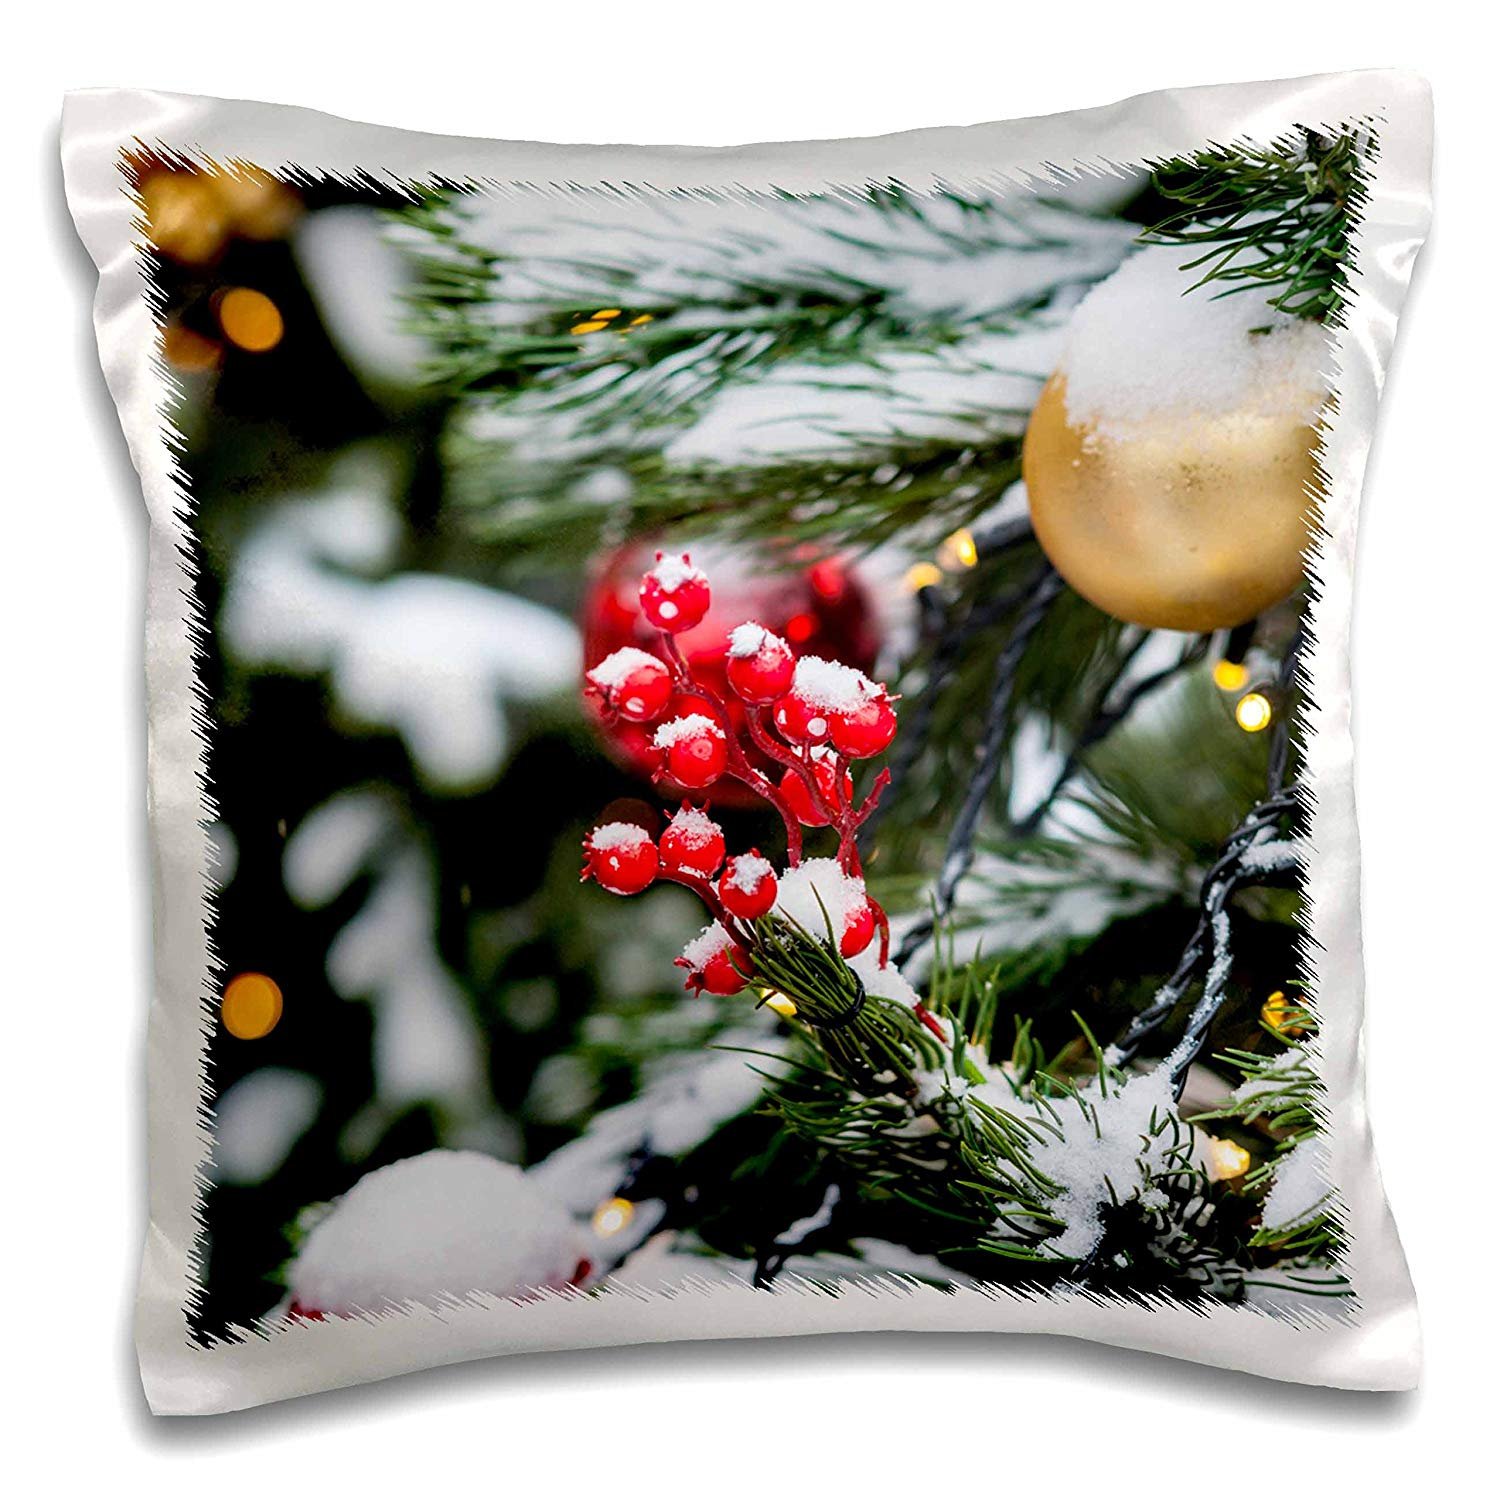 3dRose Alexis Photography - Holidays Christmas - Closeup view of a Christmas decoration on a snow covered spruce tree - 16x16 inch Pillow Case (pc_275967_1)